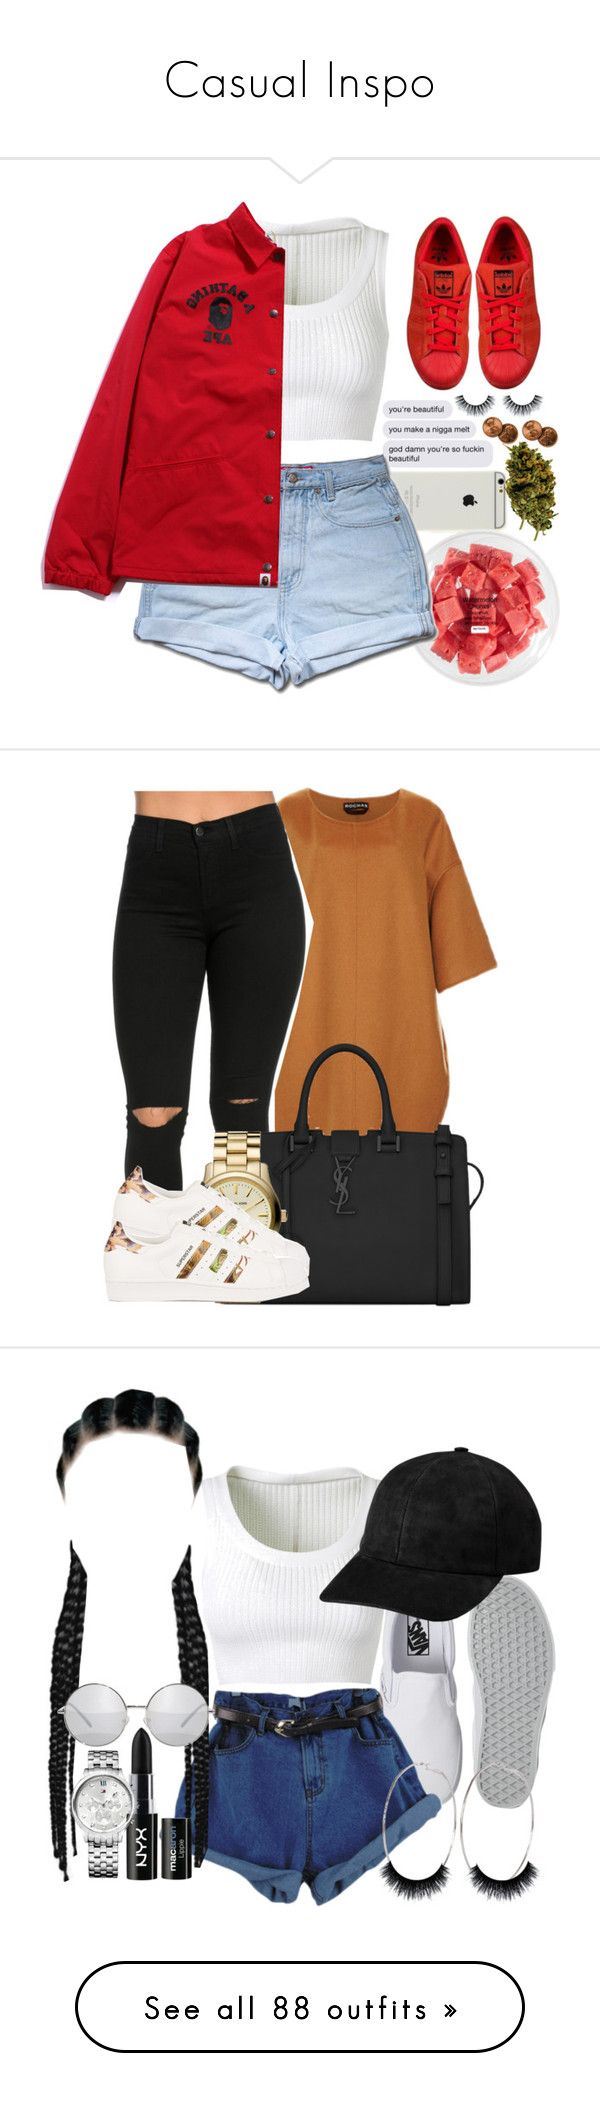 """Casual Inspo"" by oliviamariaairamaivilo ❤ liked on Polyvore featuring FRUIT, Alaïa, adidas Originals, Rochas, Yves Saint Laurent, MICHAEL Michael Kors, Vans, River Island, NYX and Tommy Hilfiger"